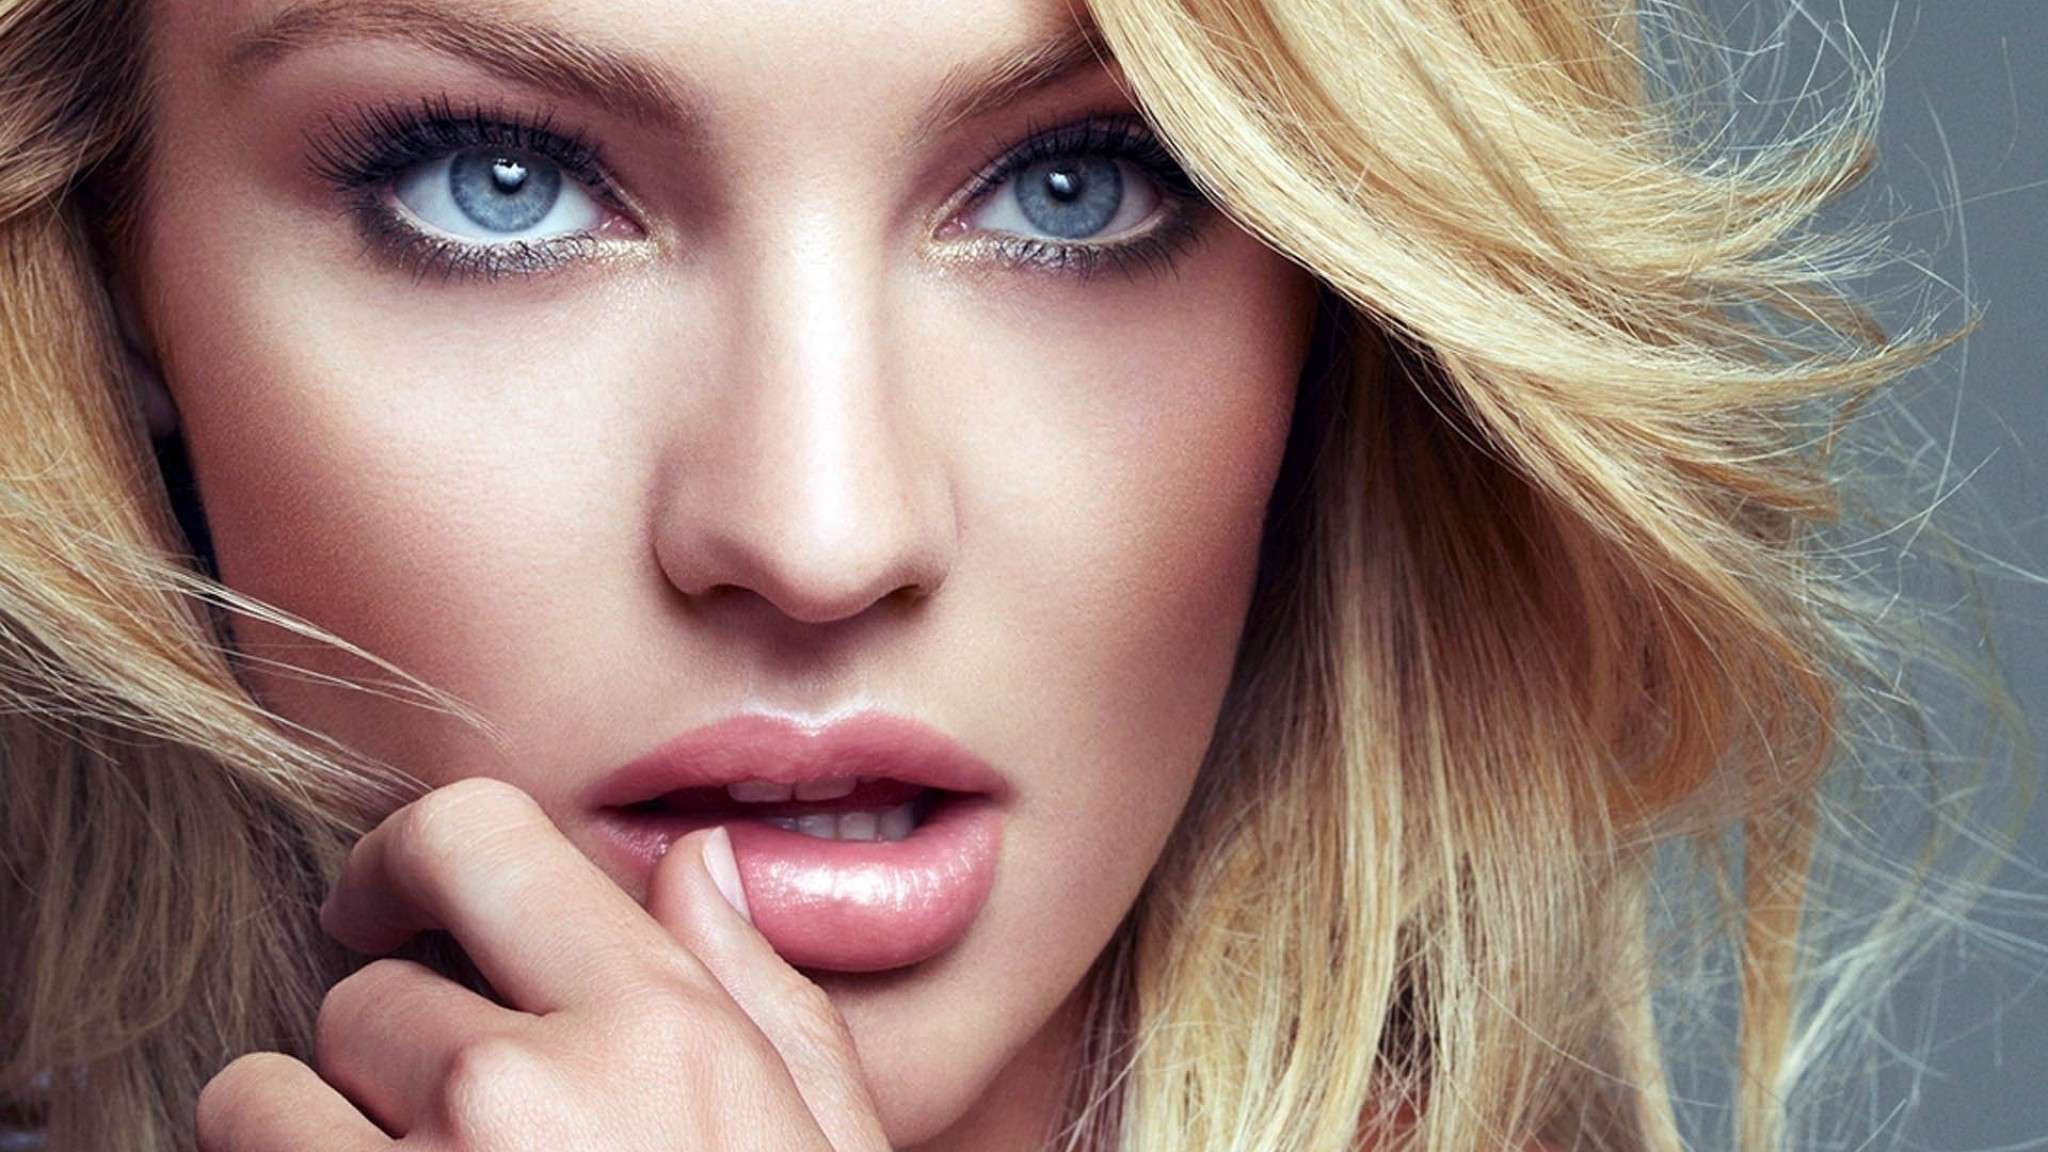 Candice Swanepoel Wallpapers Images Photos Pictures ...